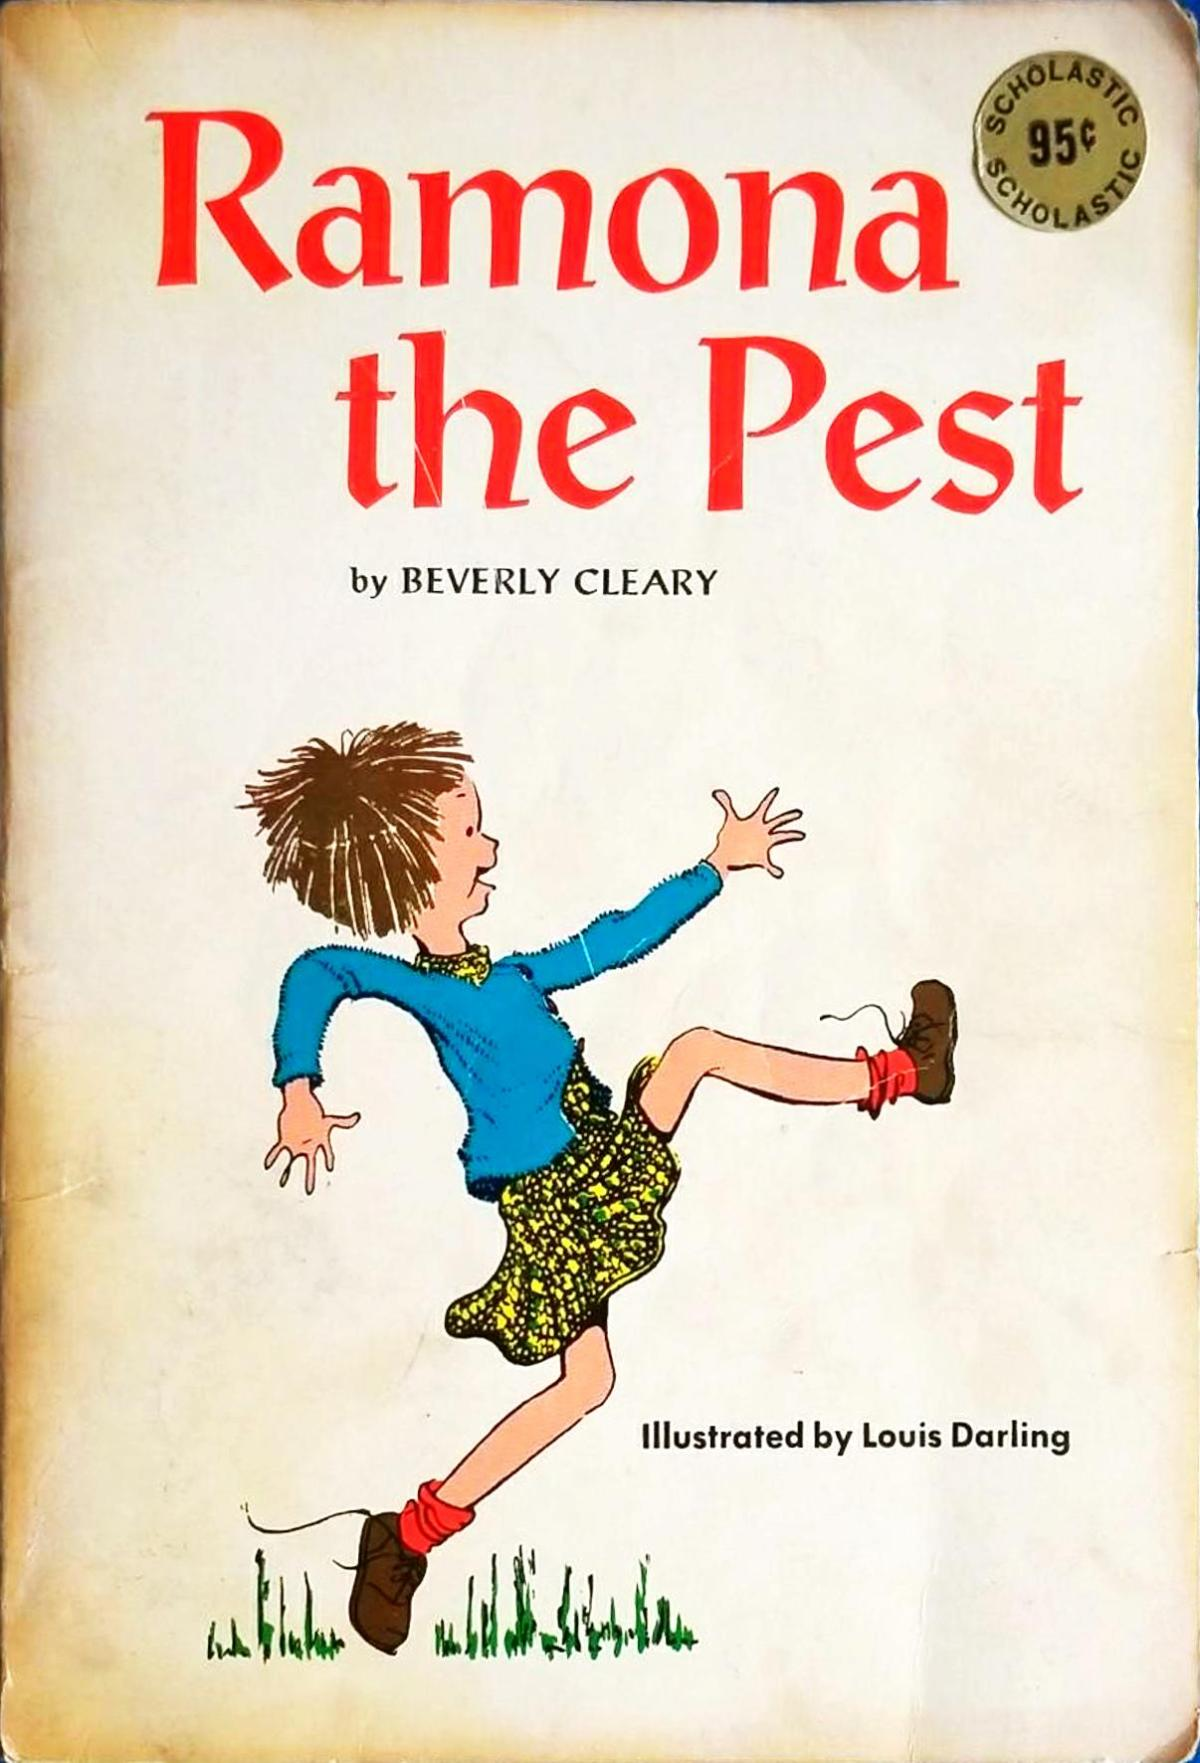 📖 Read pages 29-46 of Ramona the Pest by Beverly Cleary